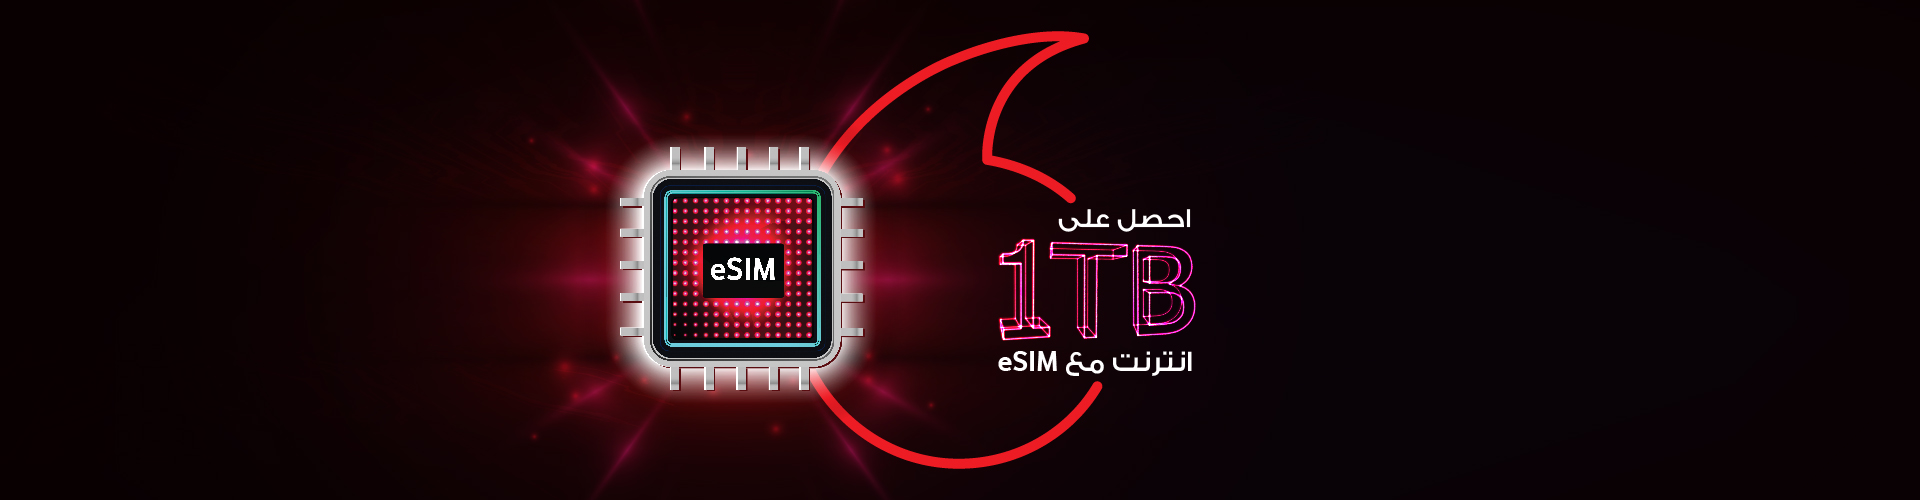 eSIM - Feat Box - Image